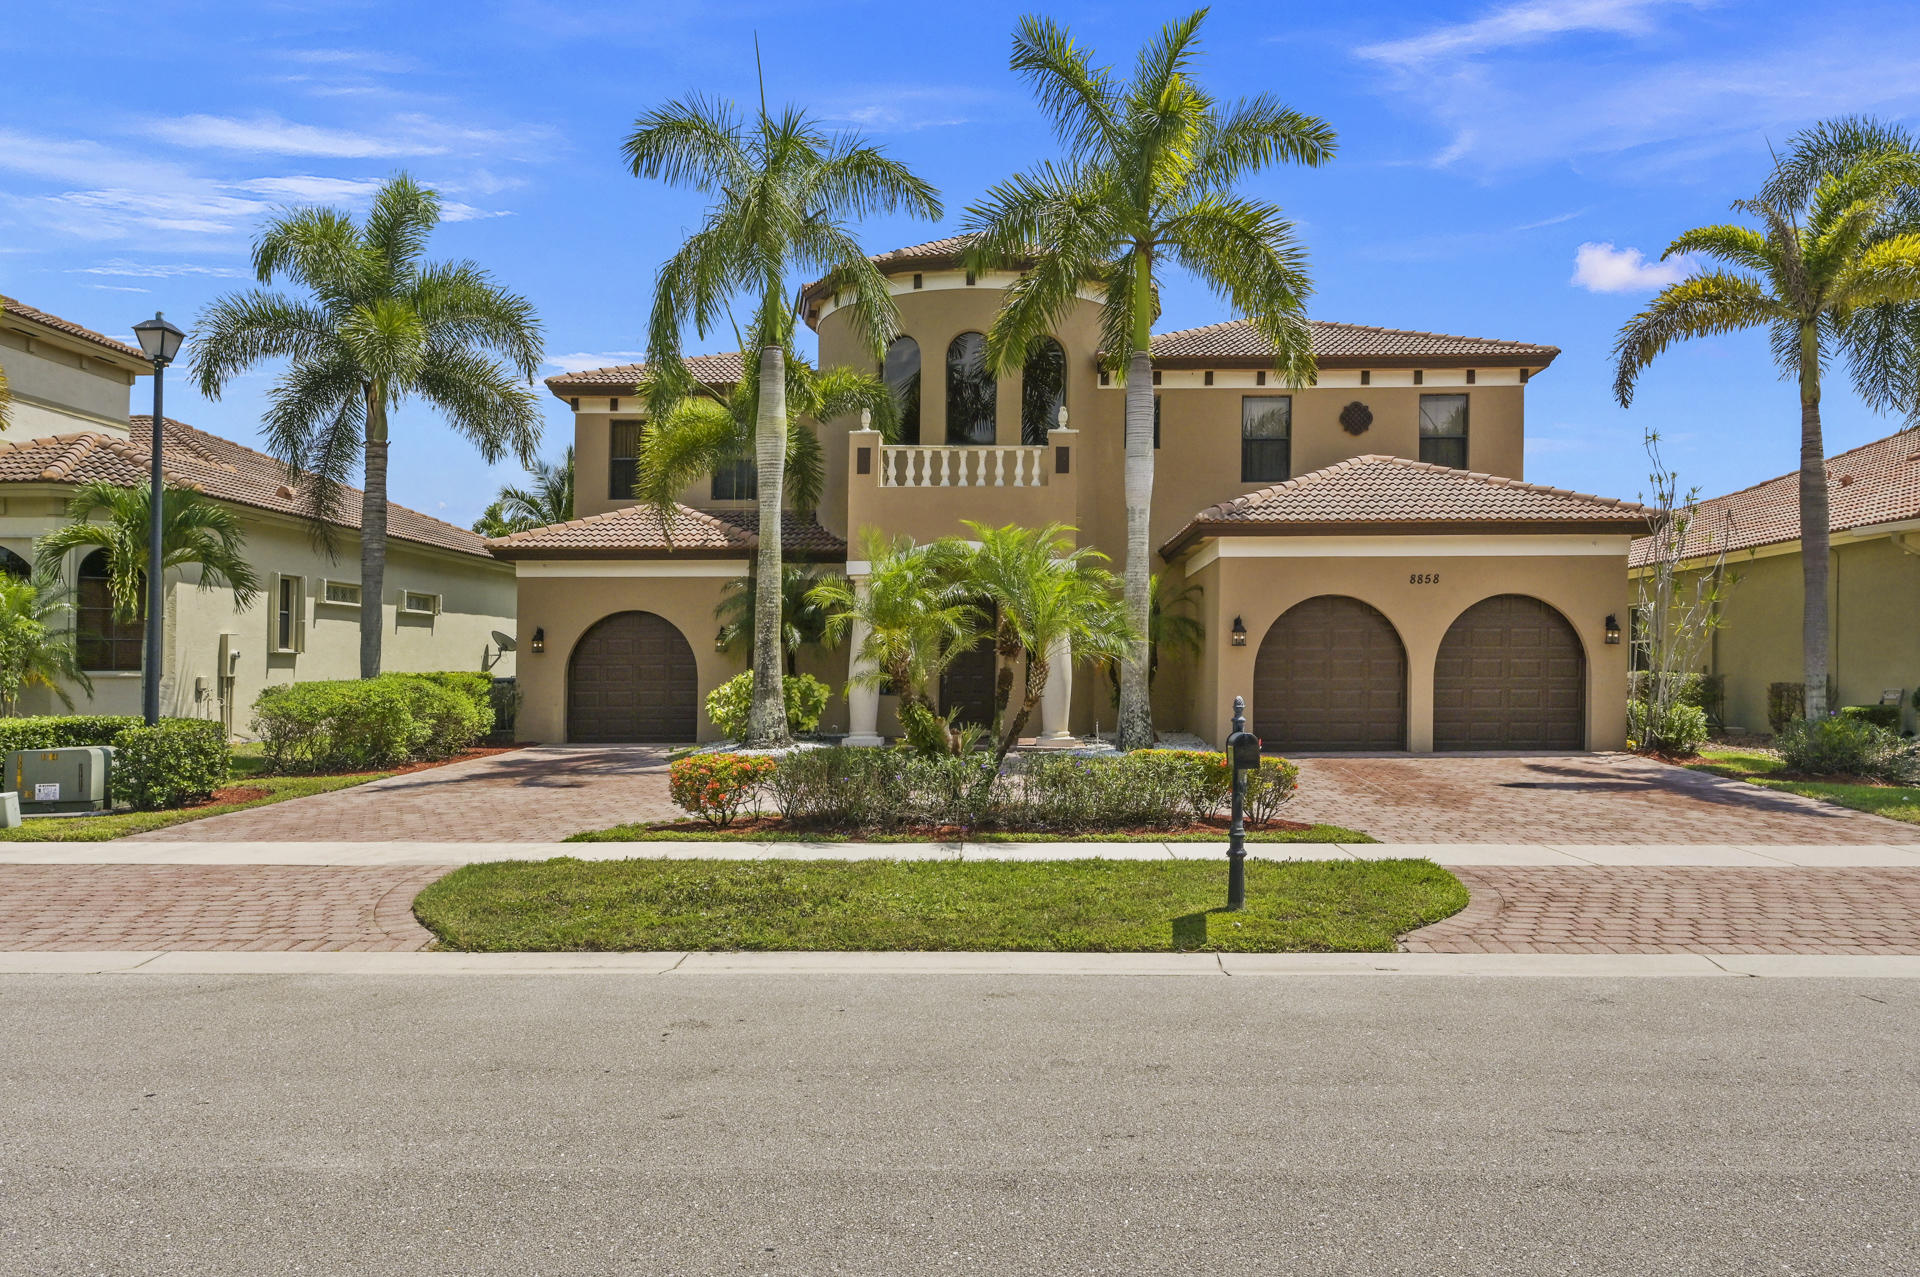 Home for sale in Club Estates Lake Worth Florida